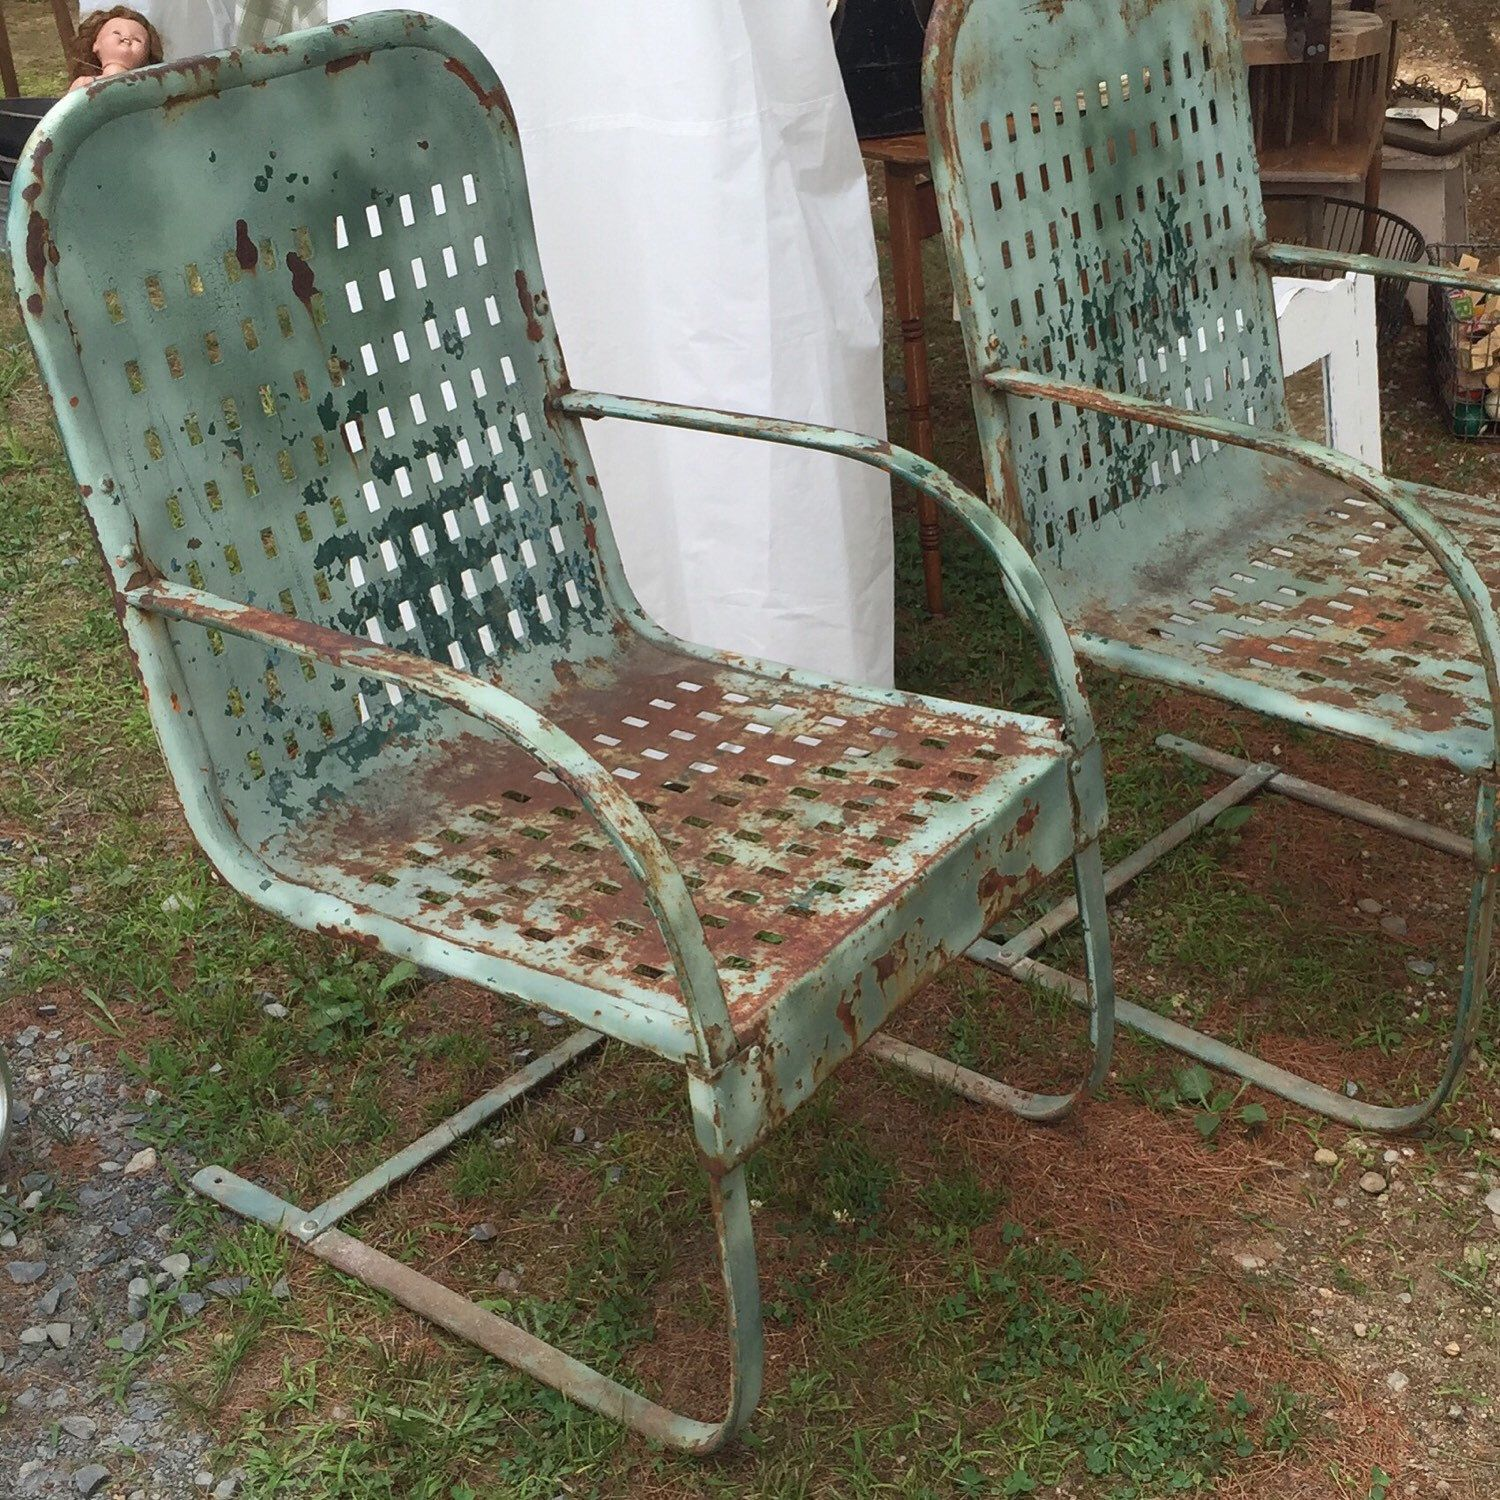 Spring Steel Garden Chairs Bouncers Pair Garden Chairs Vintage Metal Chairs Vintage Outdoor Furniture